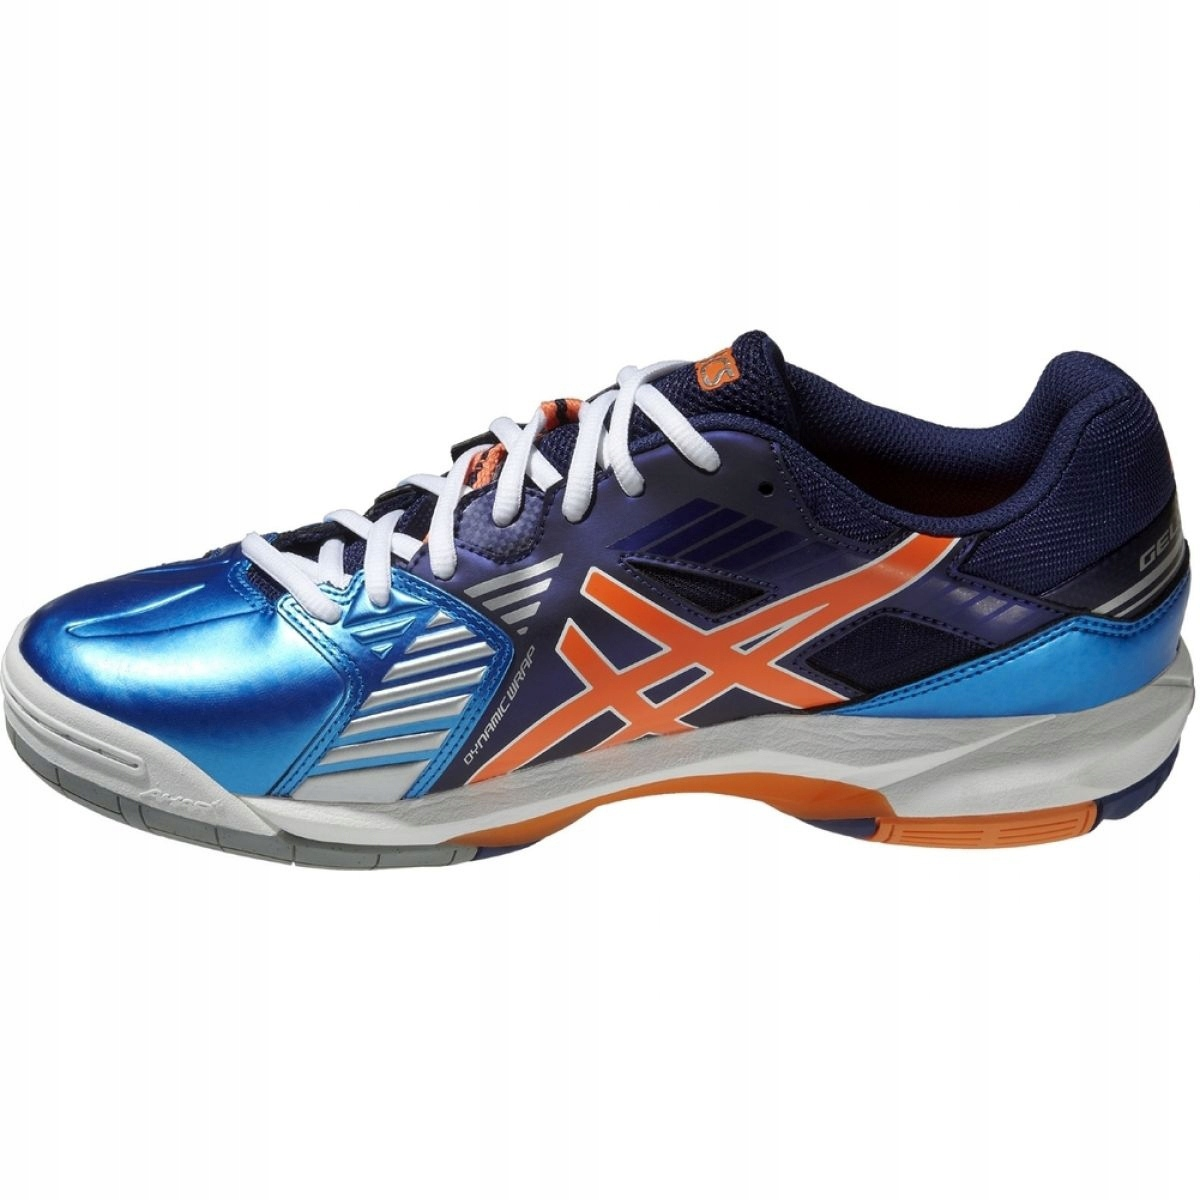 Adolescente cesar Goteo  Asics Gel Sensei 5 M B402Y-4101 shoes multicolored blue - ButyModne.pl